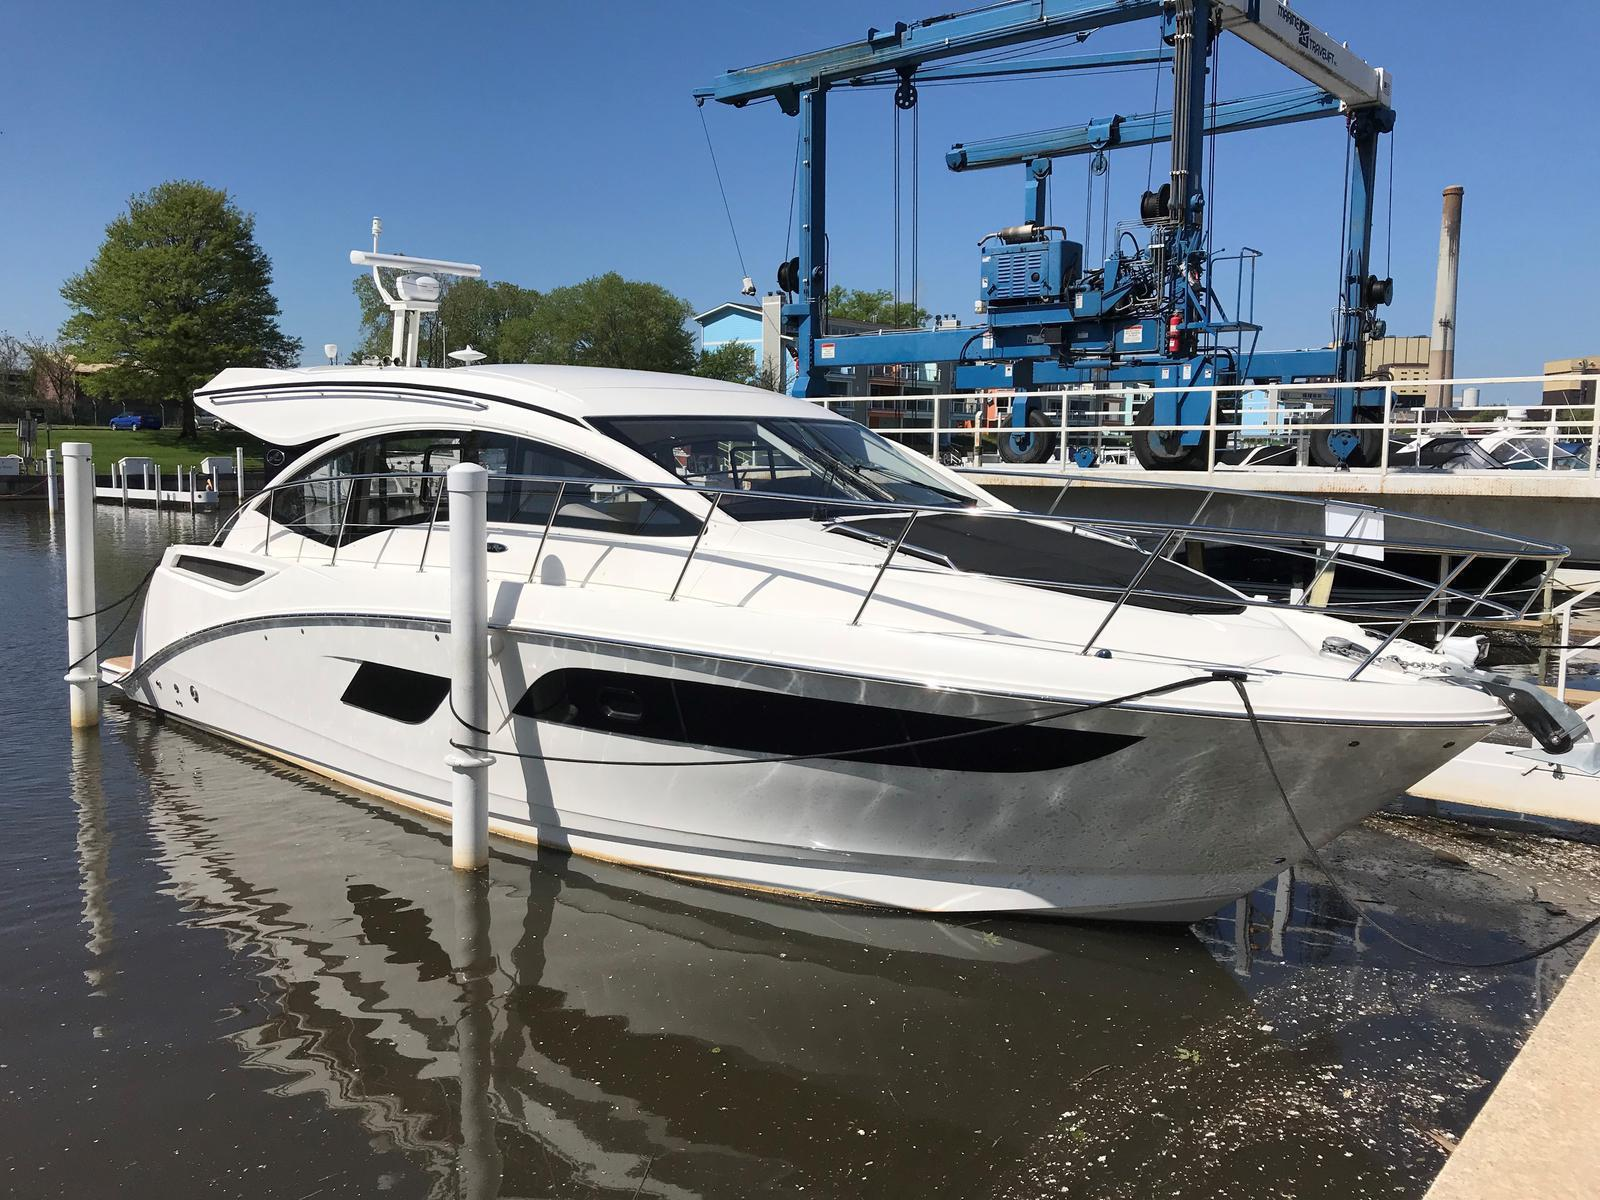 2018 Sea Ray boat for sale, model of the boat is 400 Sundancer & Image # 1 of 11